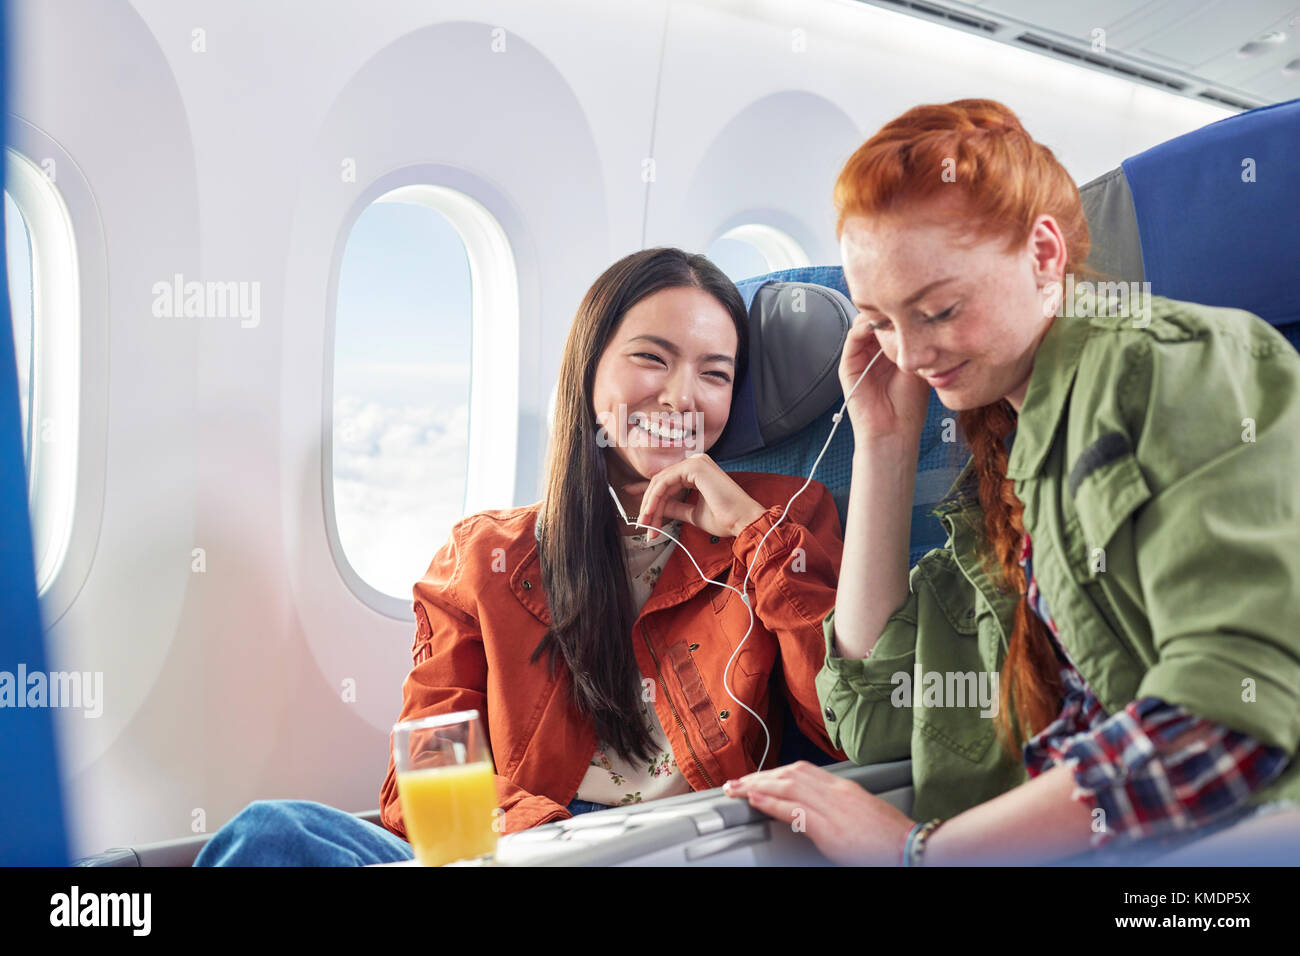 Young women friends sharing headphones,listening to music on airplane - Stock Image